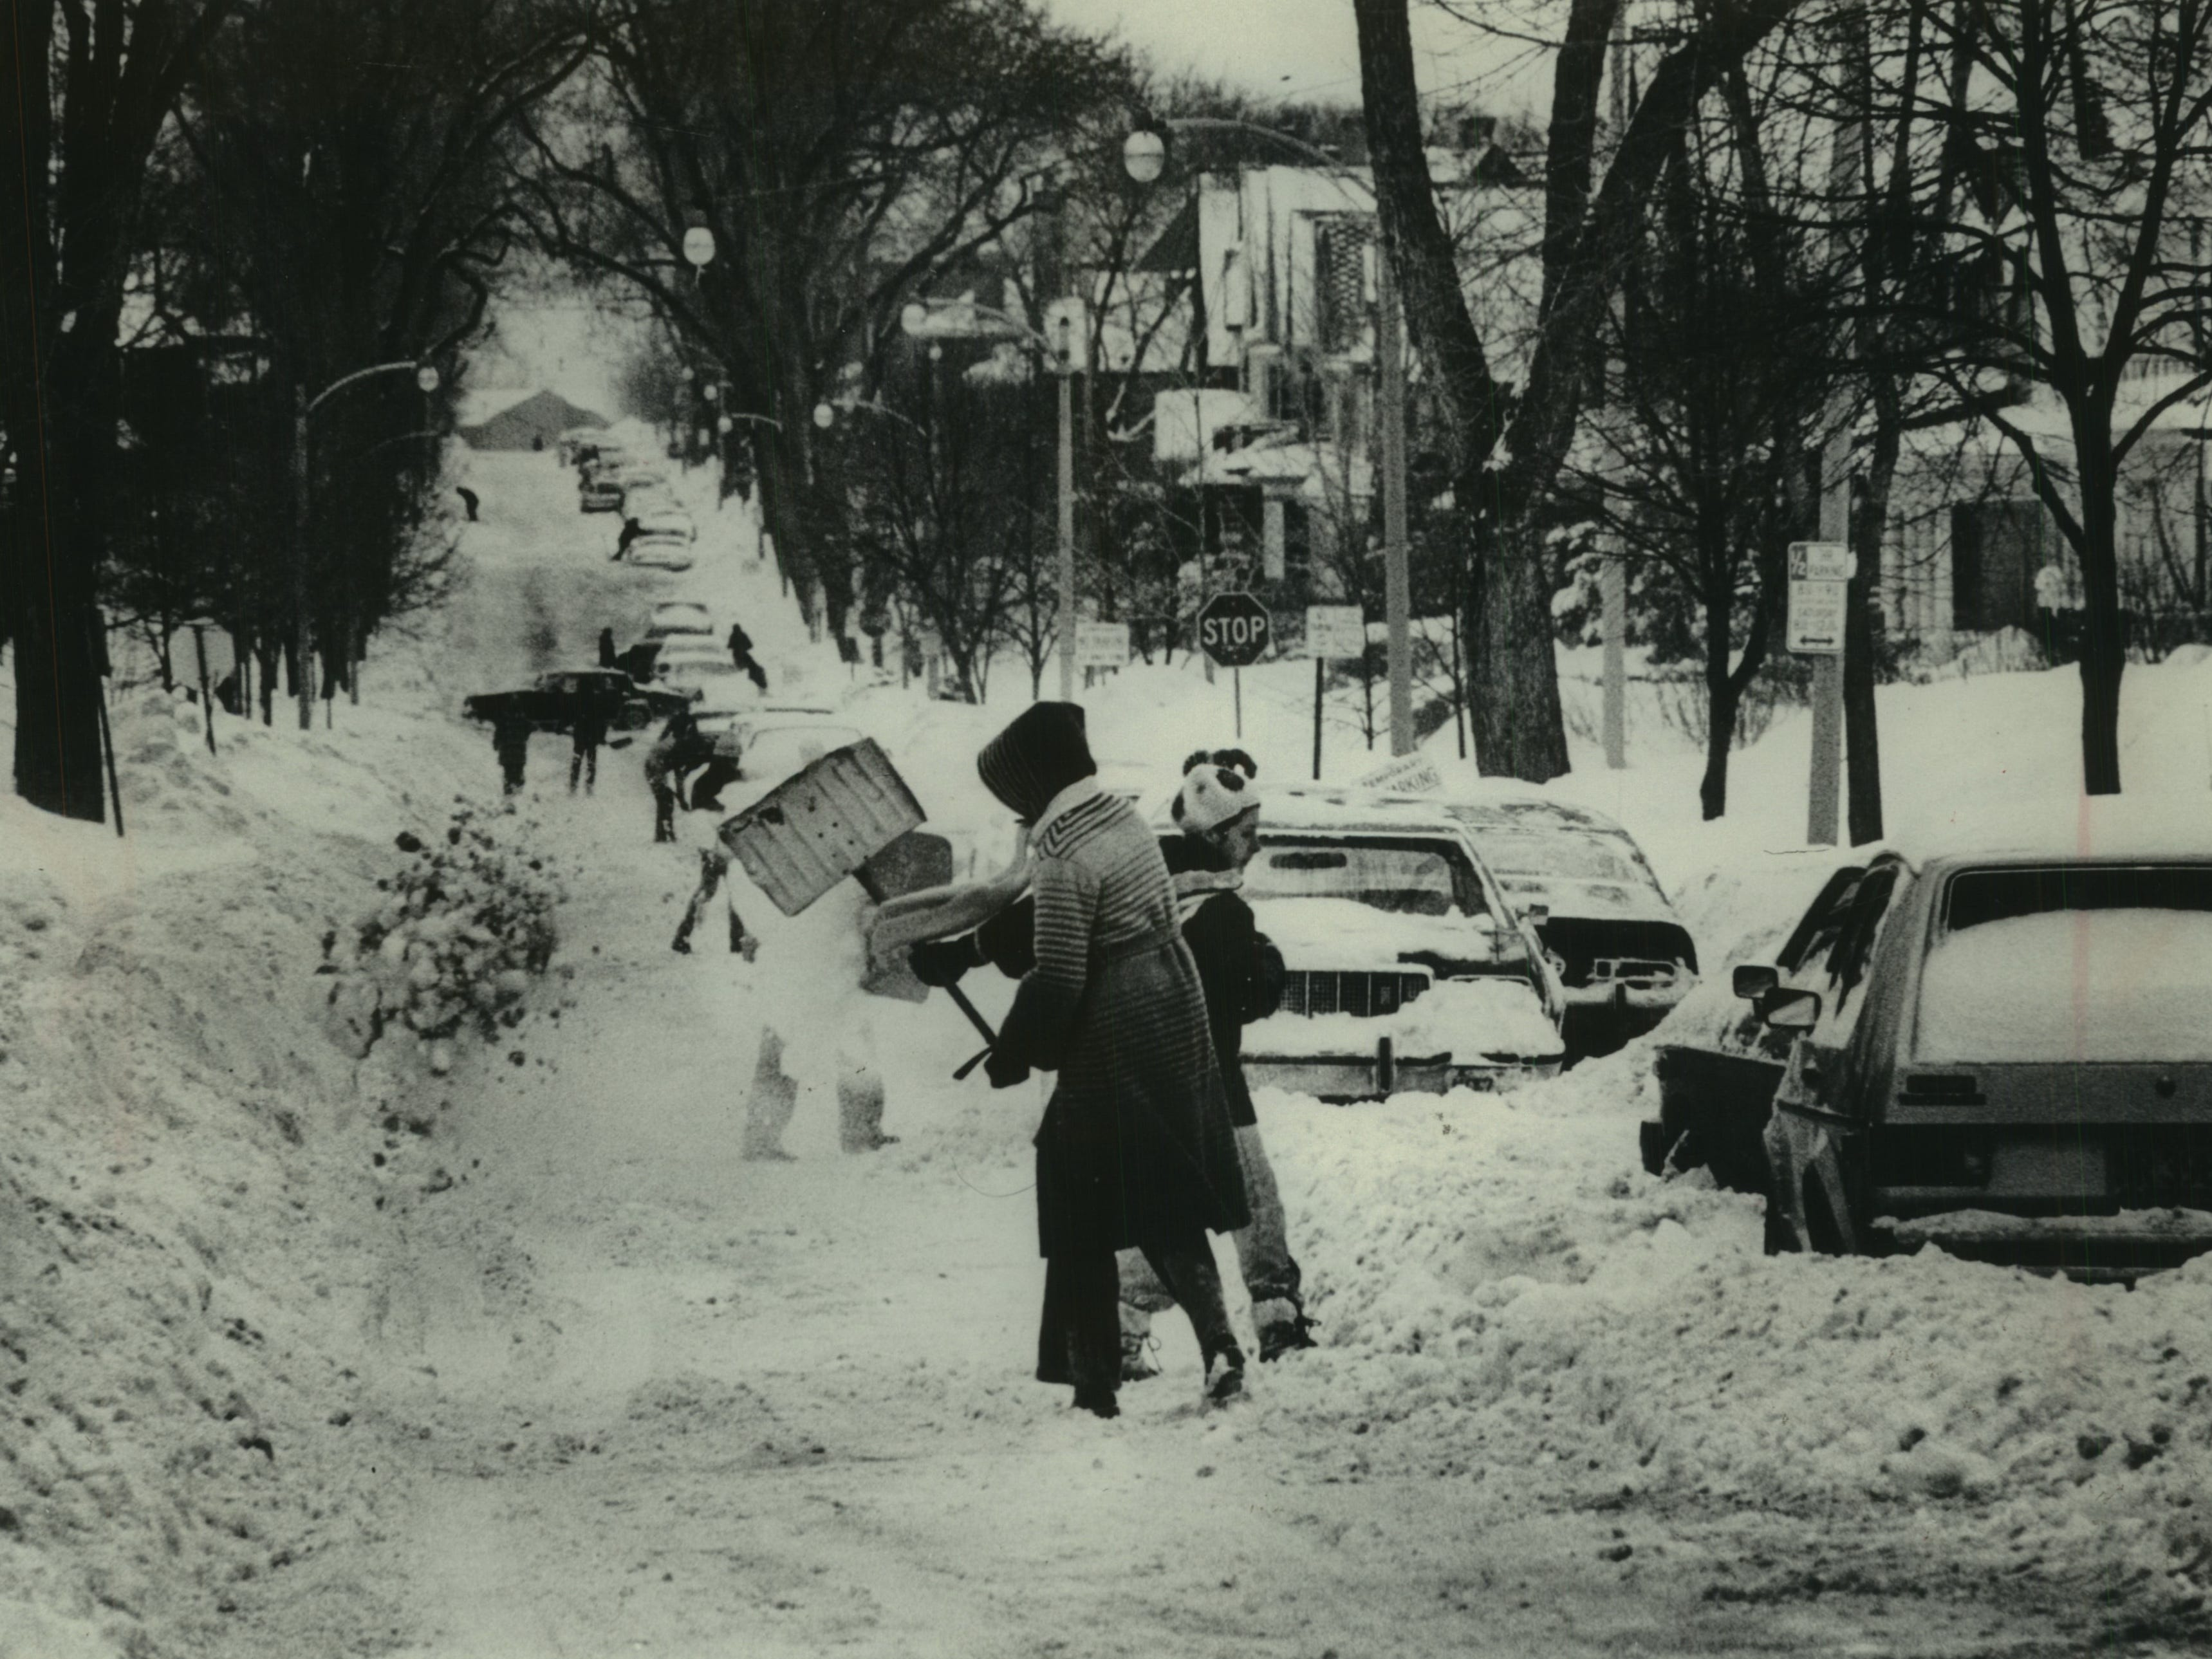 Motorists race to dig cars out of the snow along North Farwell Avenue on Jan. 24, 1979. Police warned that cars parked on the street would be towed to clear the way for plowing operations; by then, the city had towed hundreds of abandoned cars to storage lots. This photo was published in the Jan. 25, 1979, Milwaukee Sentinel.